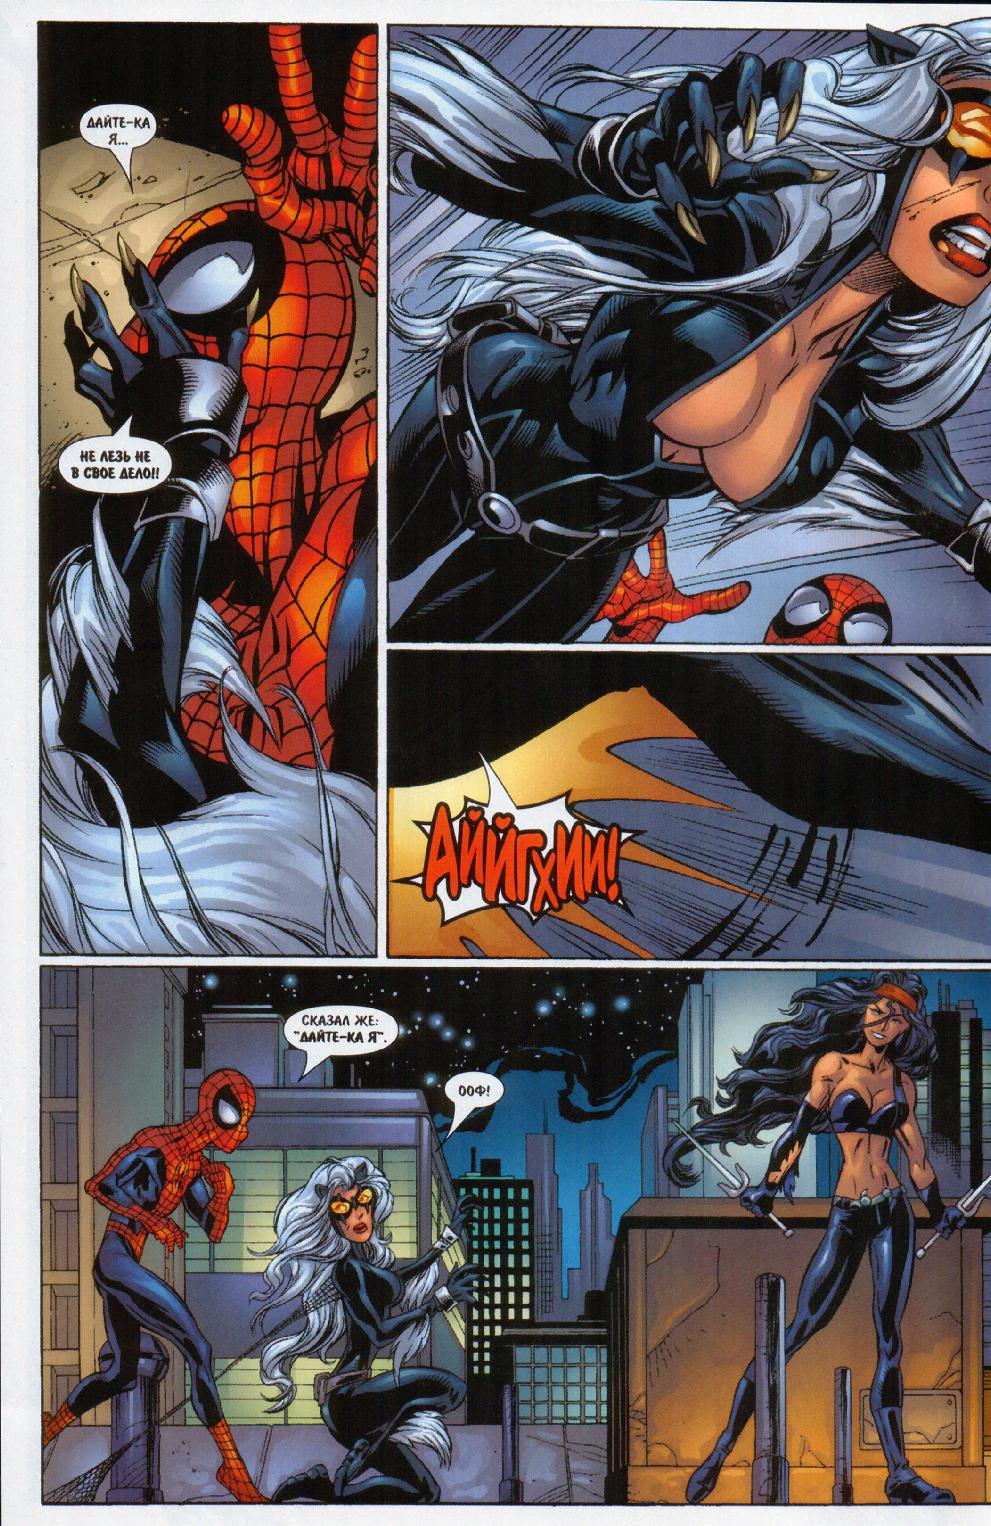 Blackcat and spiderman comics